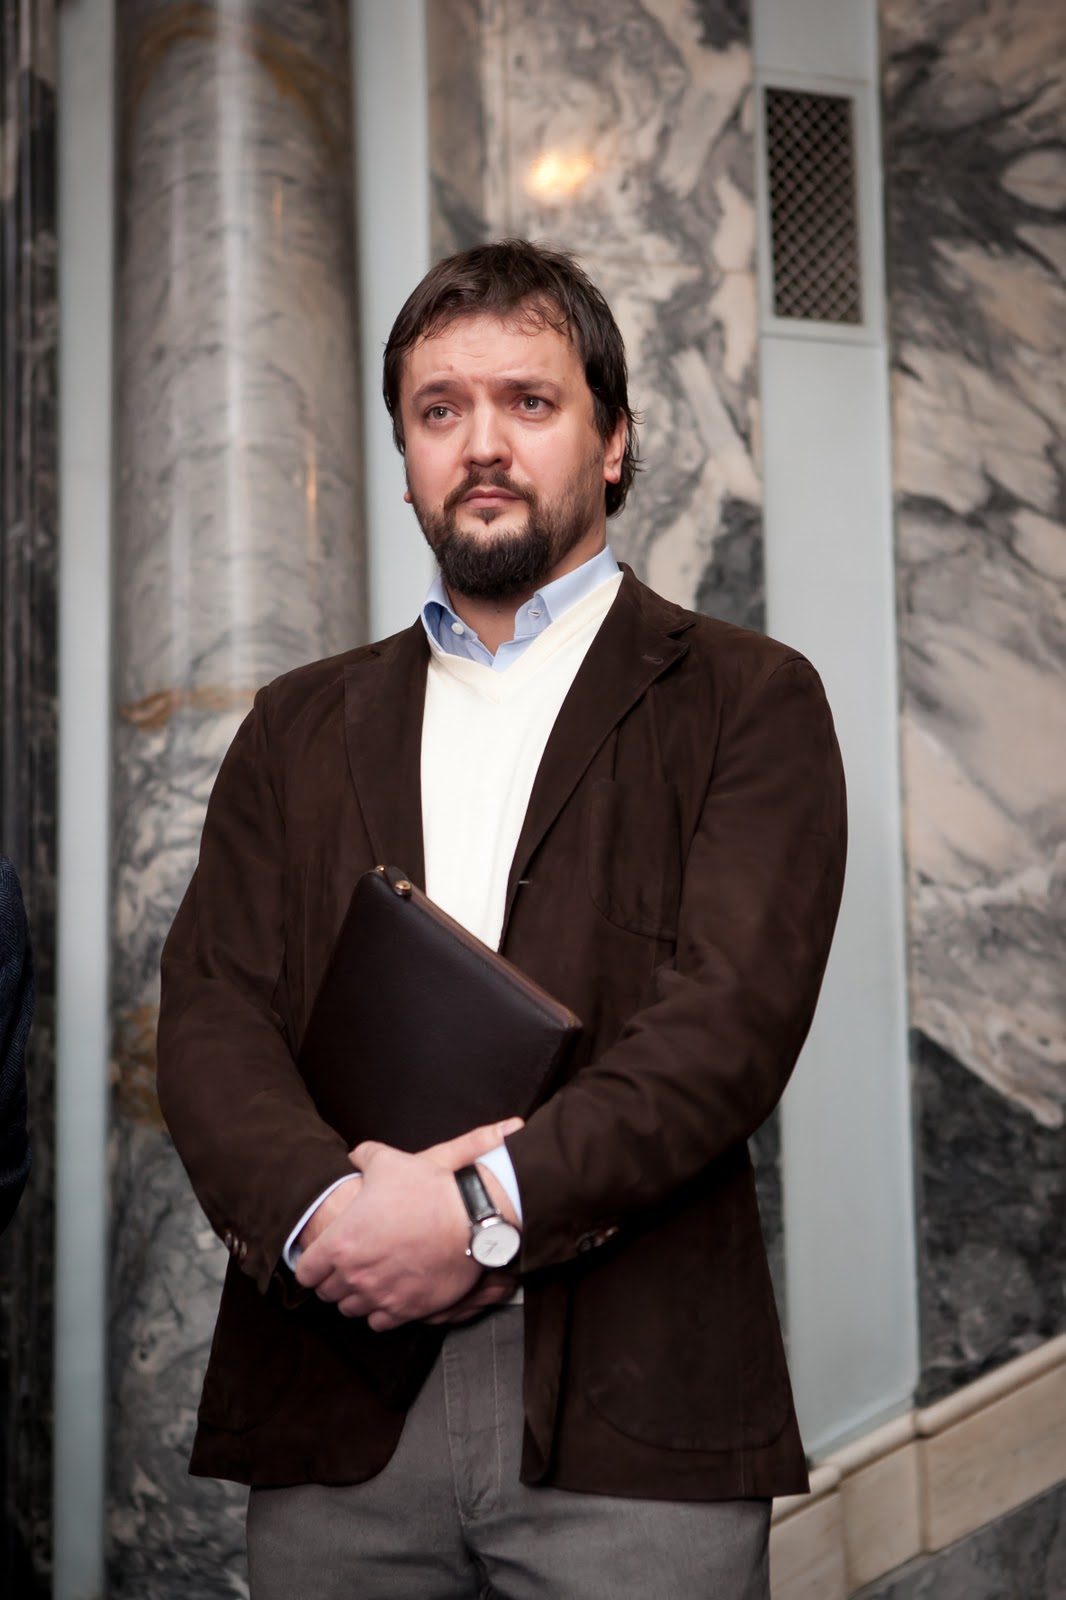 Semen Morozov, actor: biography, filmography, personal life and cause of death